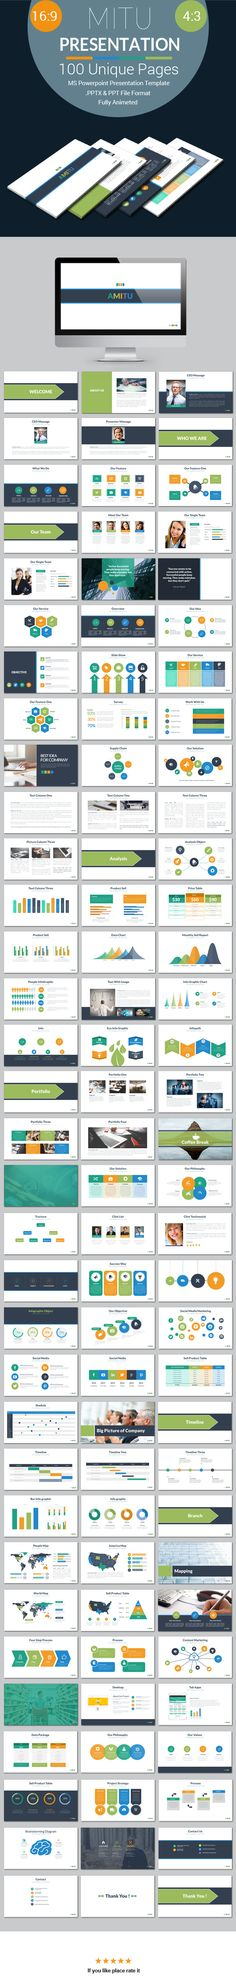 Mitu Powerpoint Presentation Template - PowerPoint Templates Presentation Templates